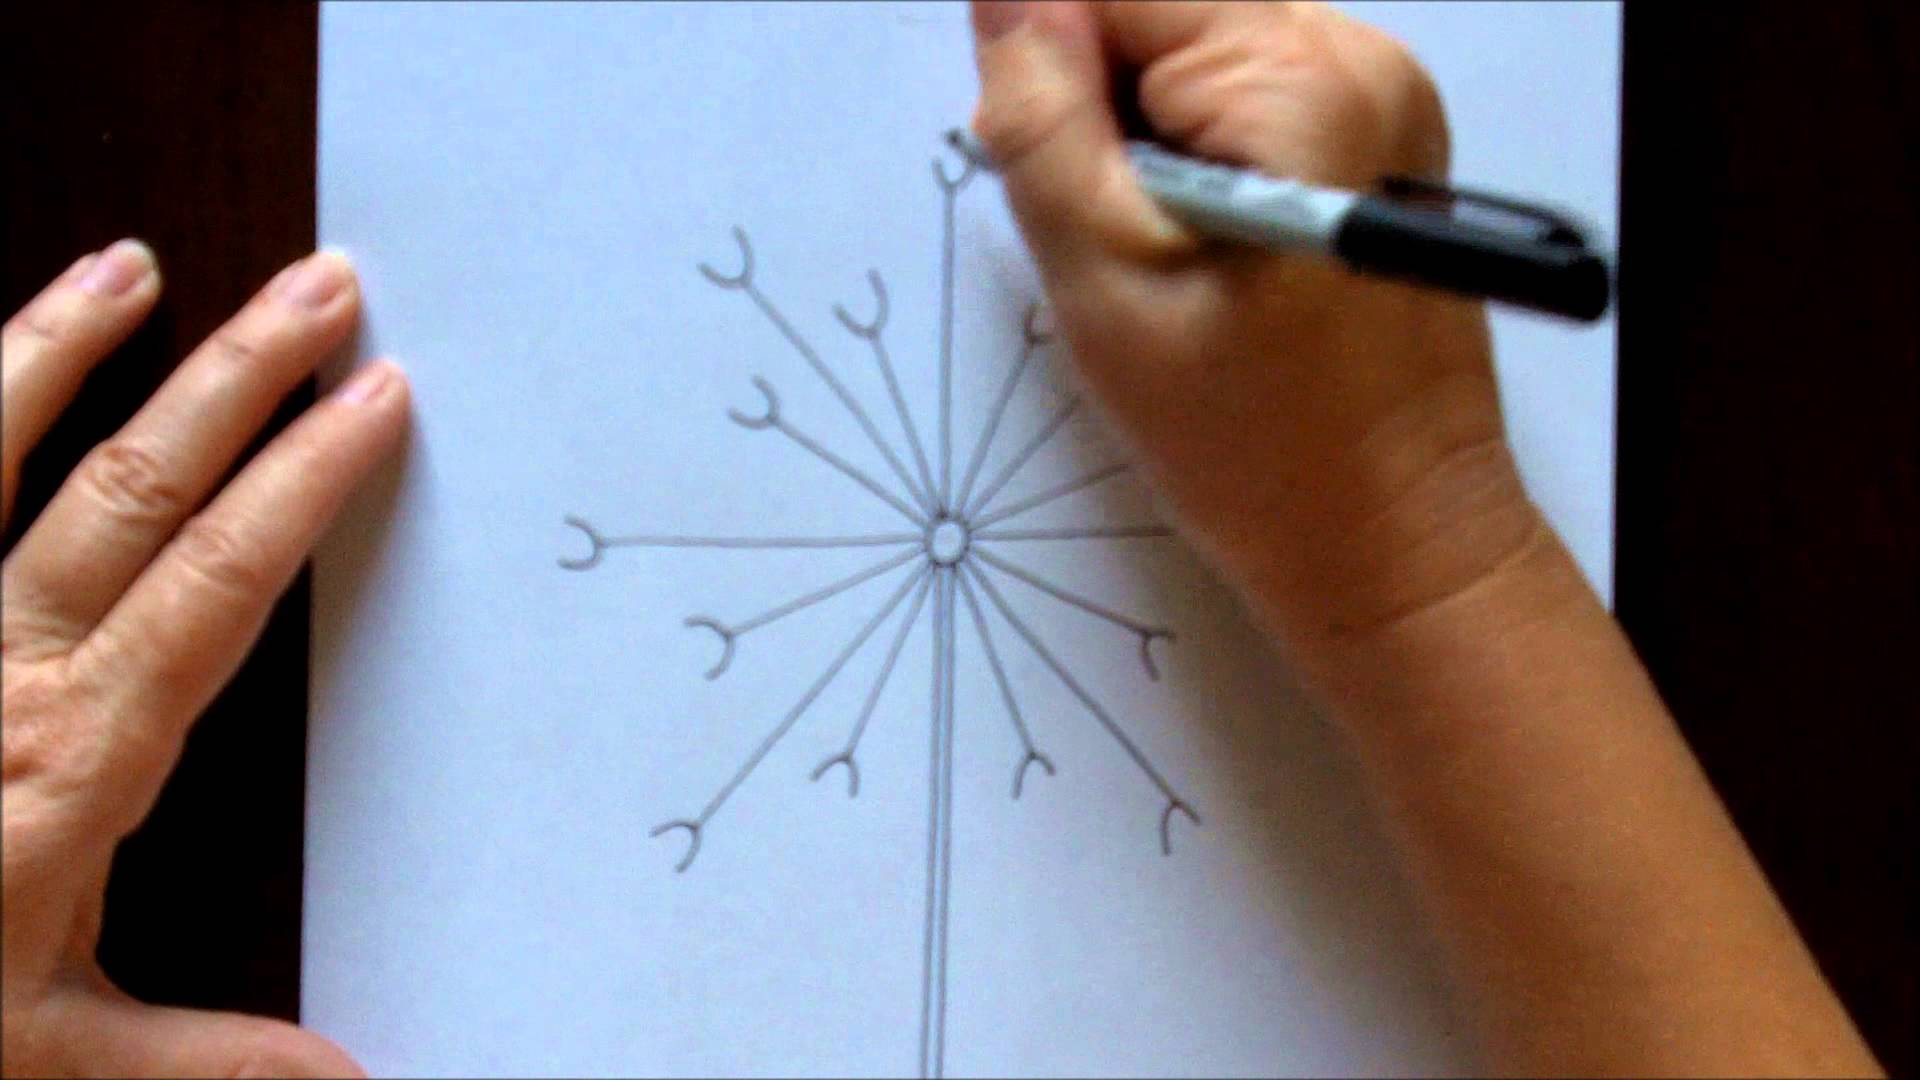 How to draw a dandelion easy free drawing tutorial for for How to draw a dandelion step by step